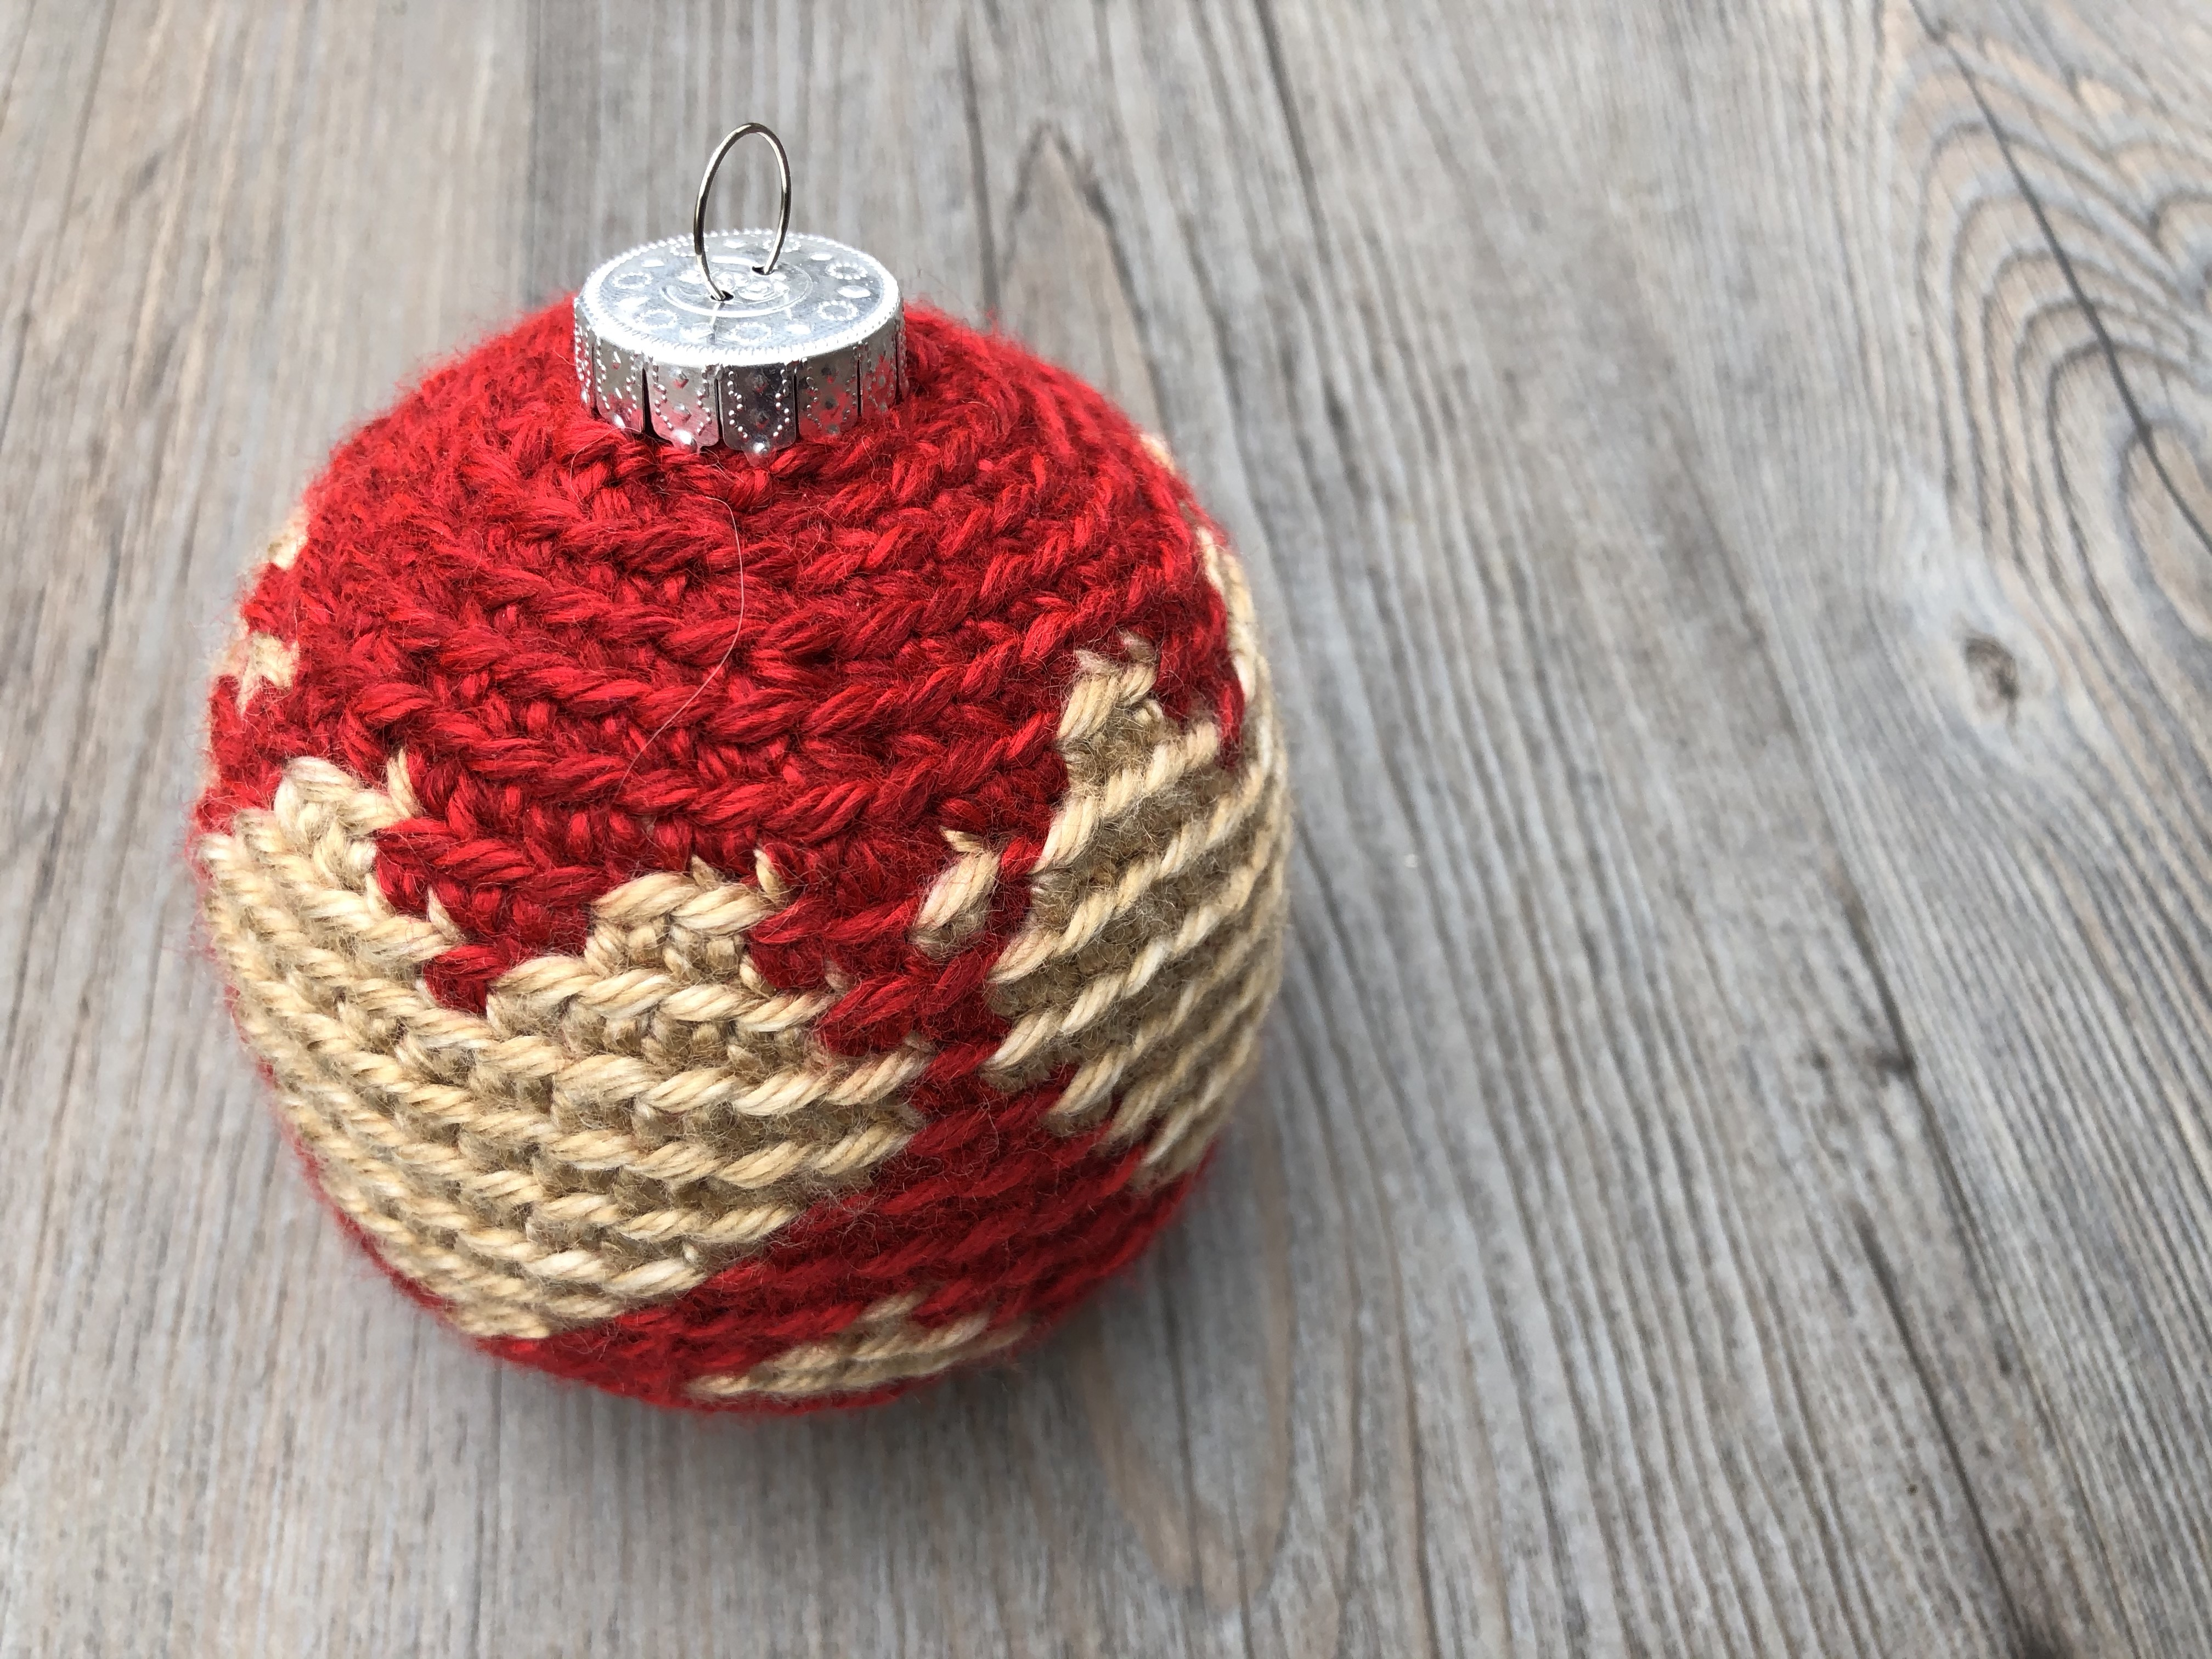 crochet Christmas ornament with heart